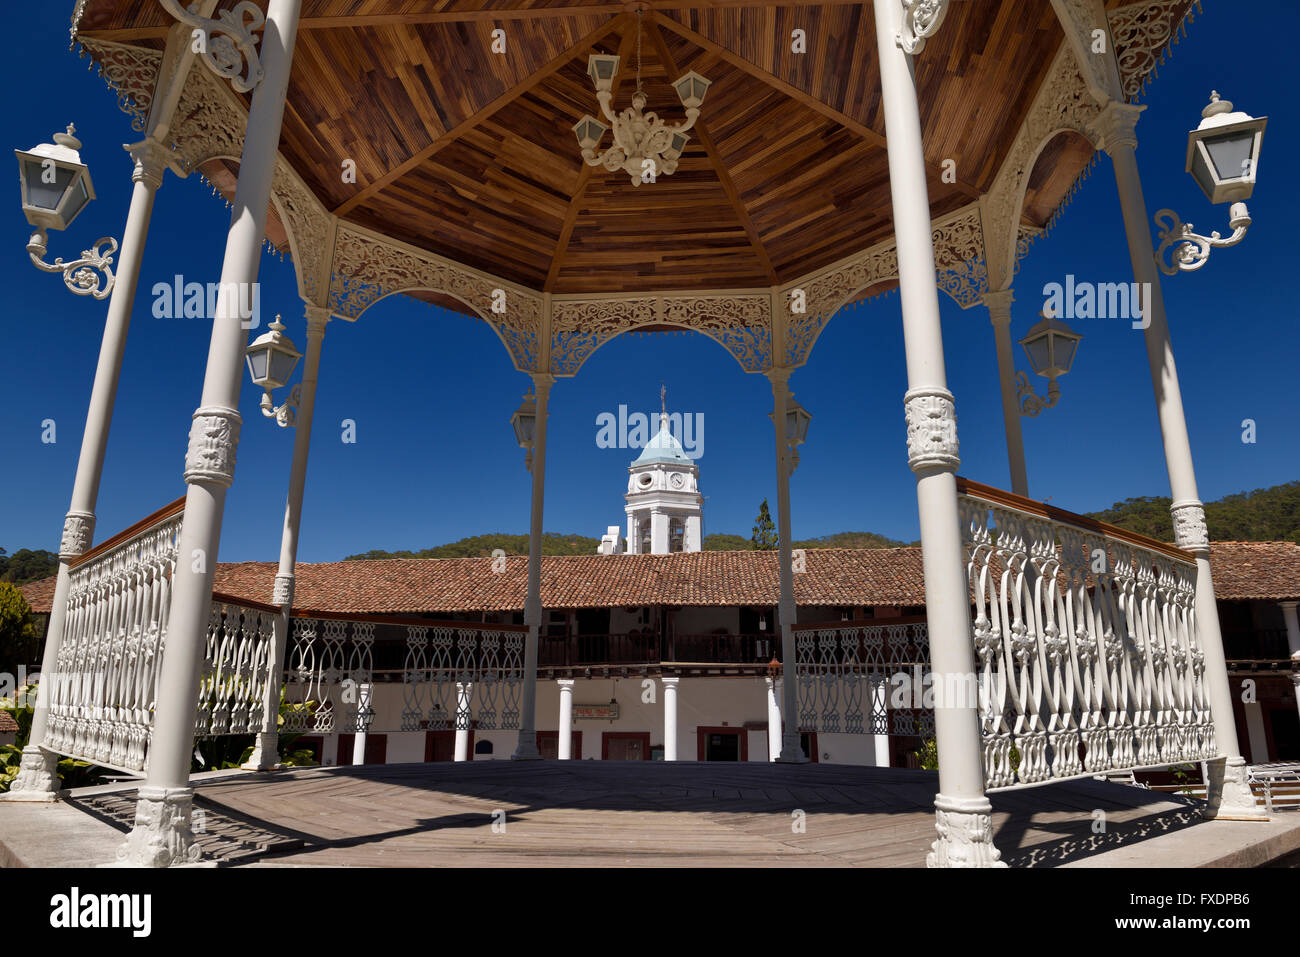 Bandstand in central square of San Sebastian del Oeste Jalisco Mexico with church bell tower - Stock Image